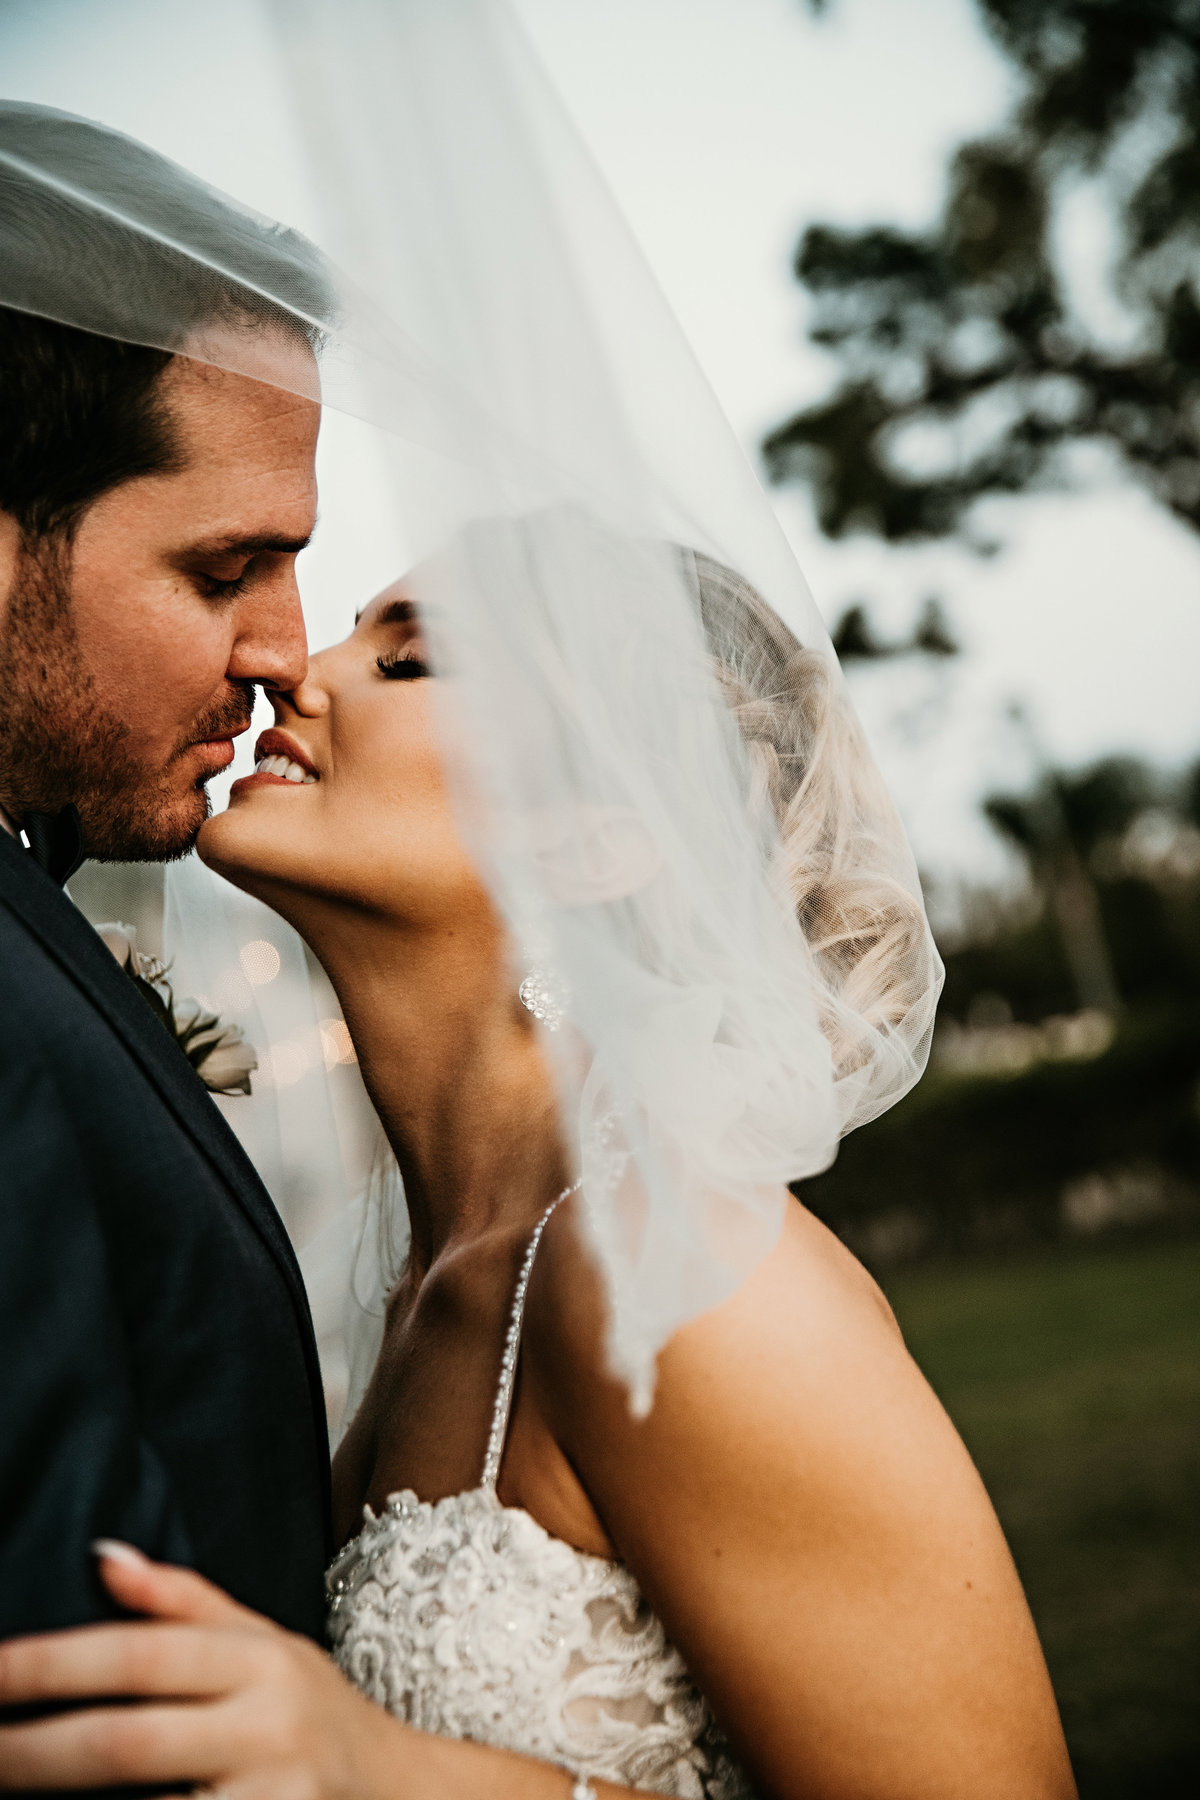 An image of a closeup view of the bride and groom romantically leaning in to kiss as the bride's veil drapes around them by Garry & Stacy Photography Co - Tampa wedding photographers